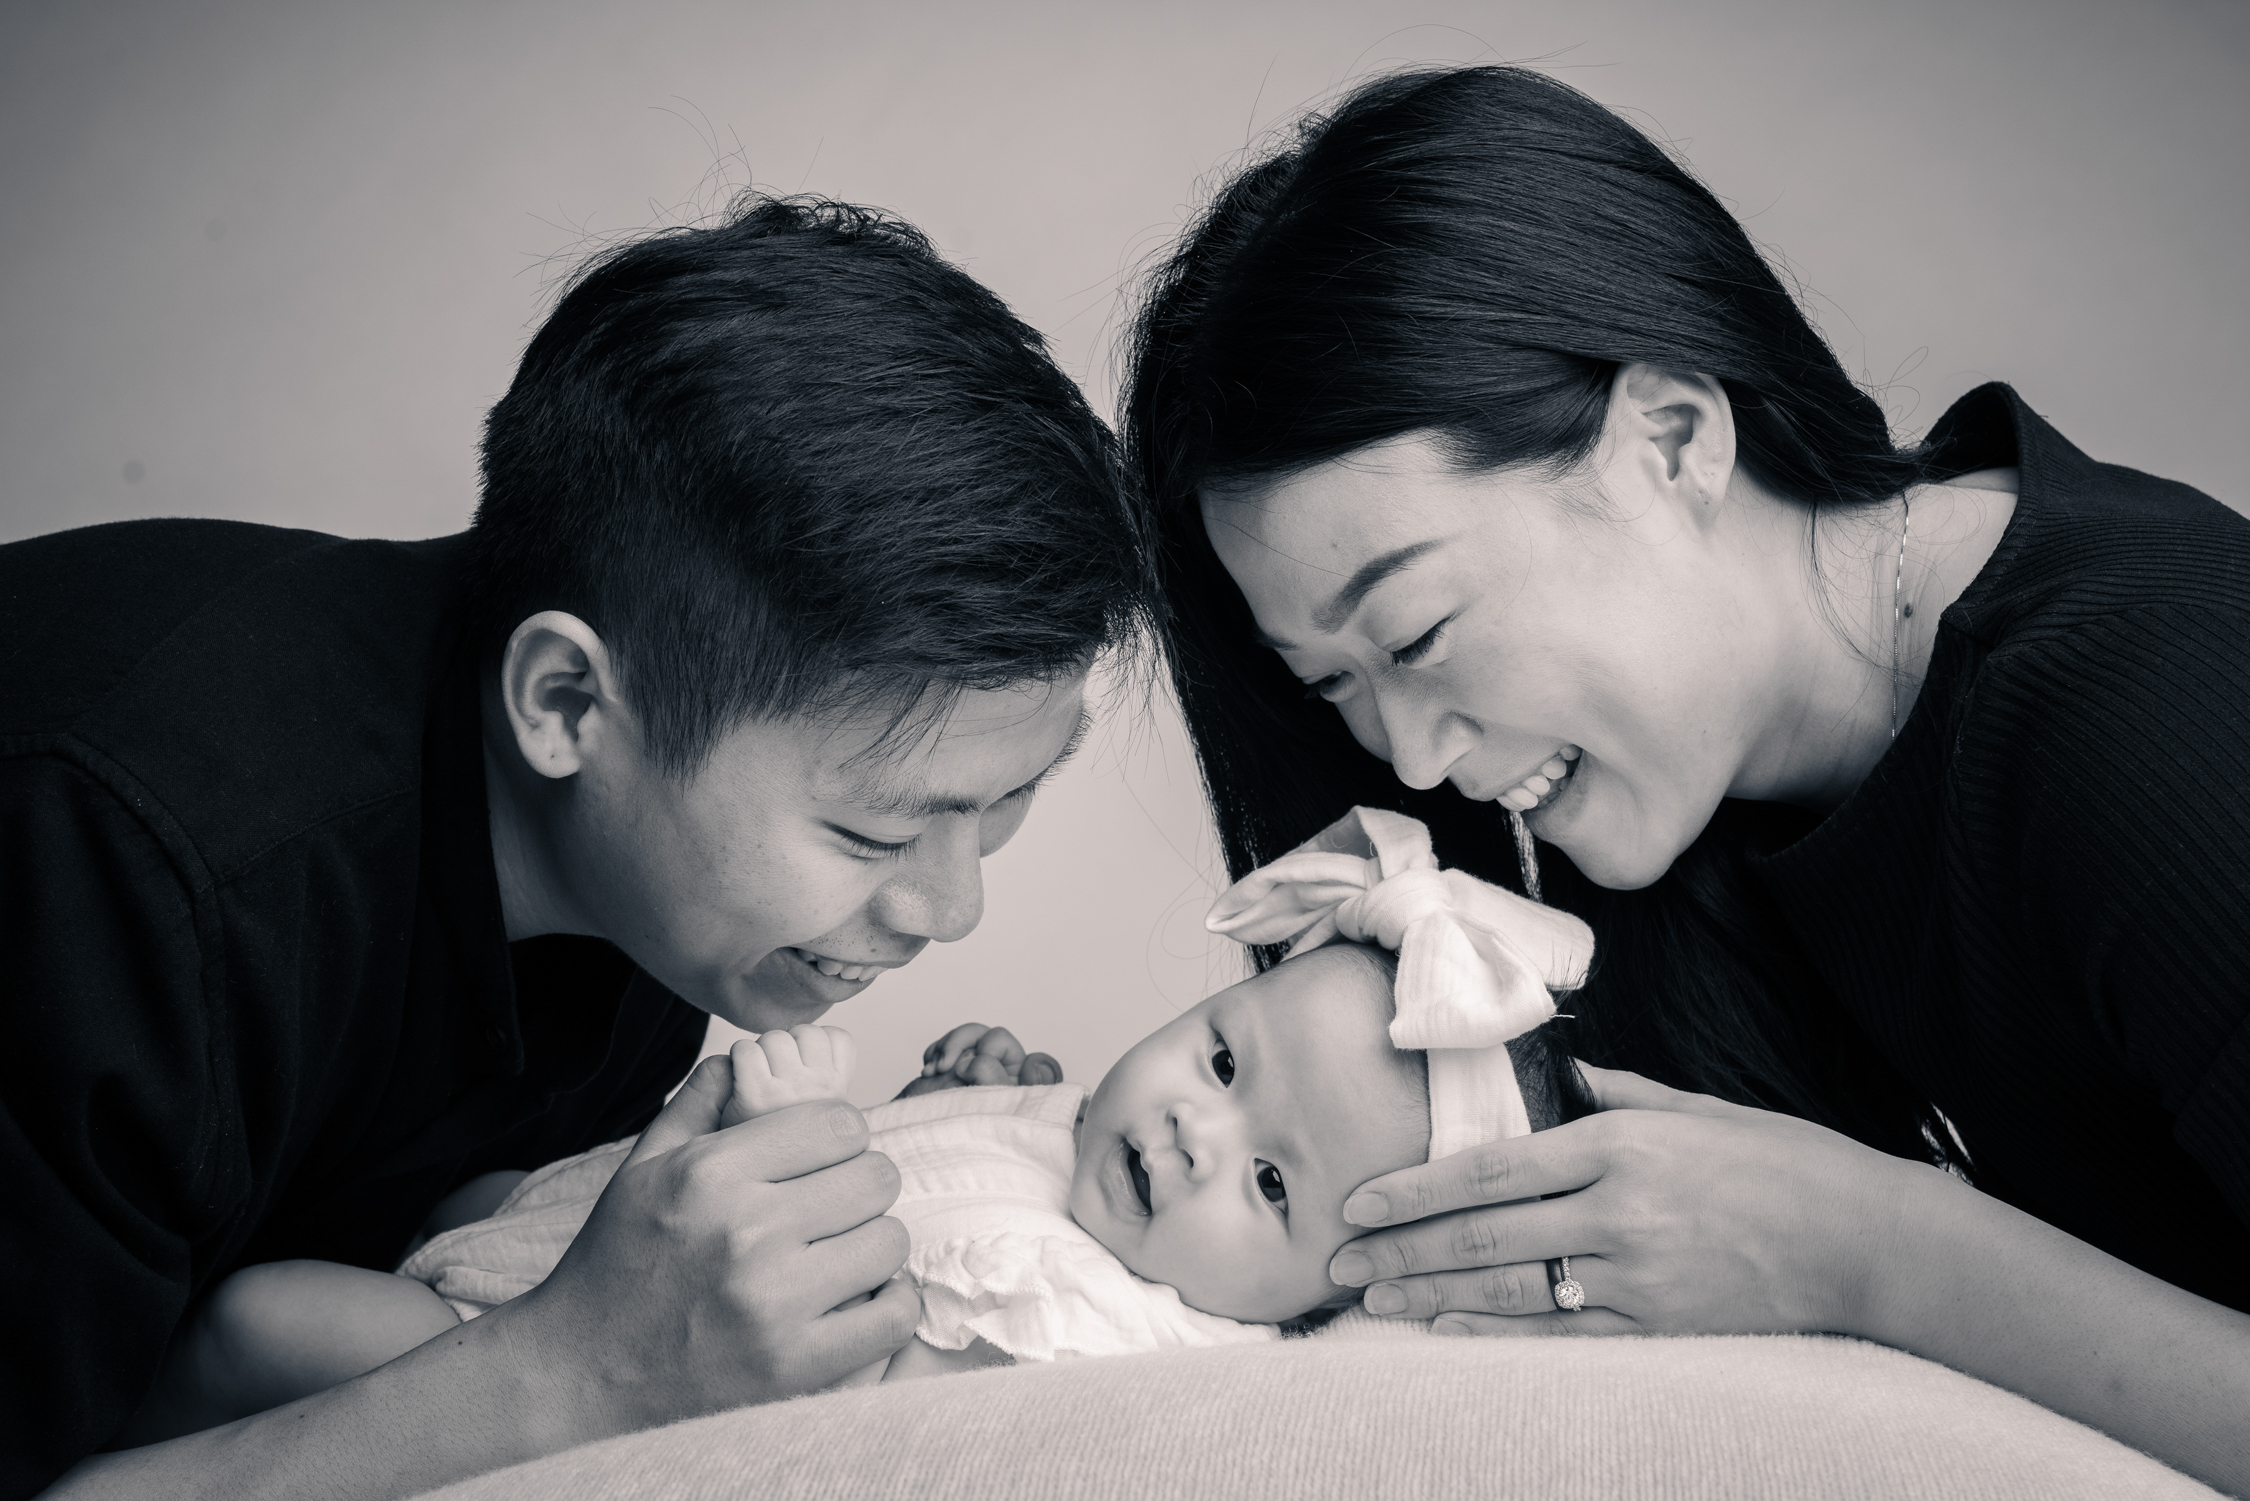 black and white photo of parents smiling at their child